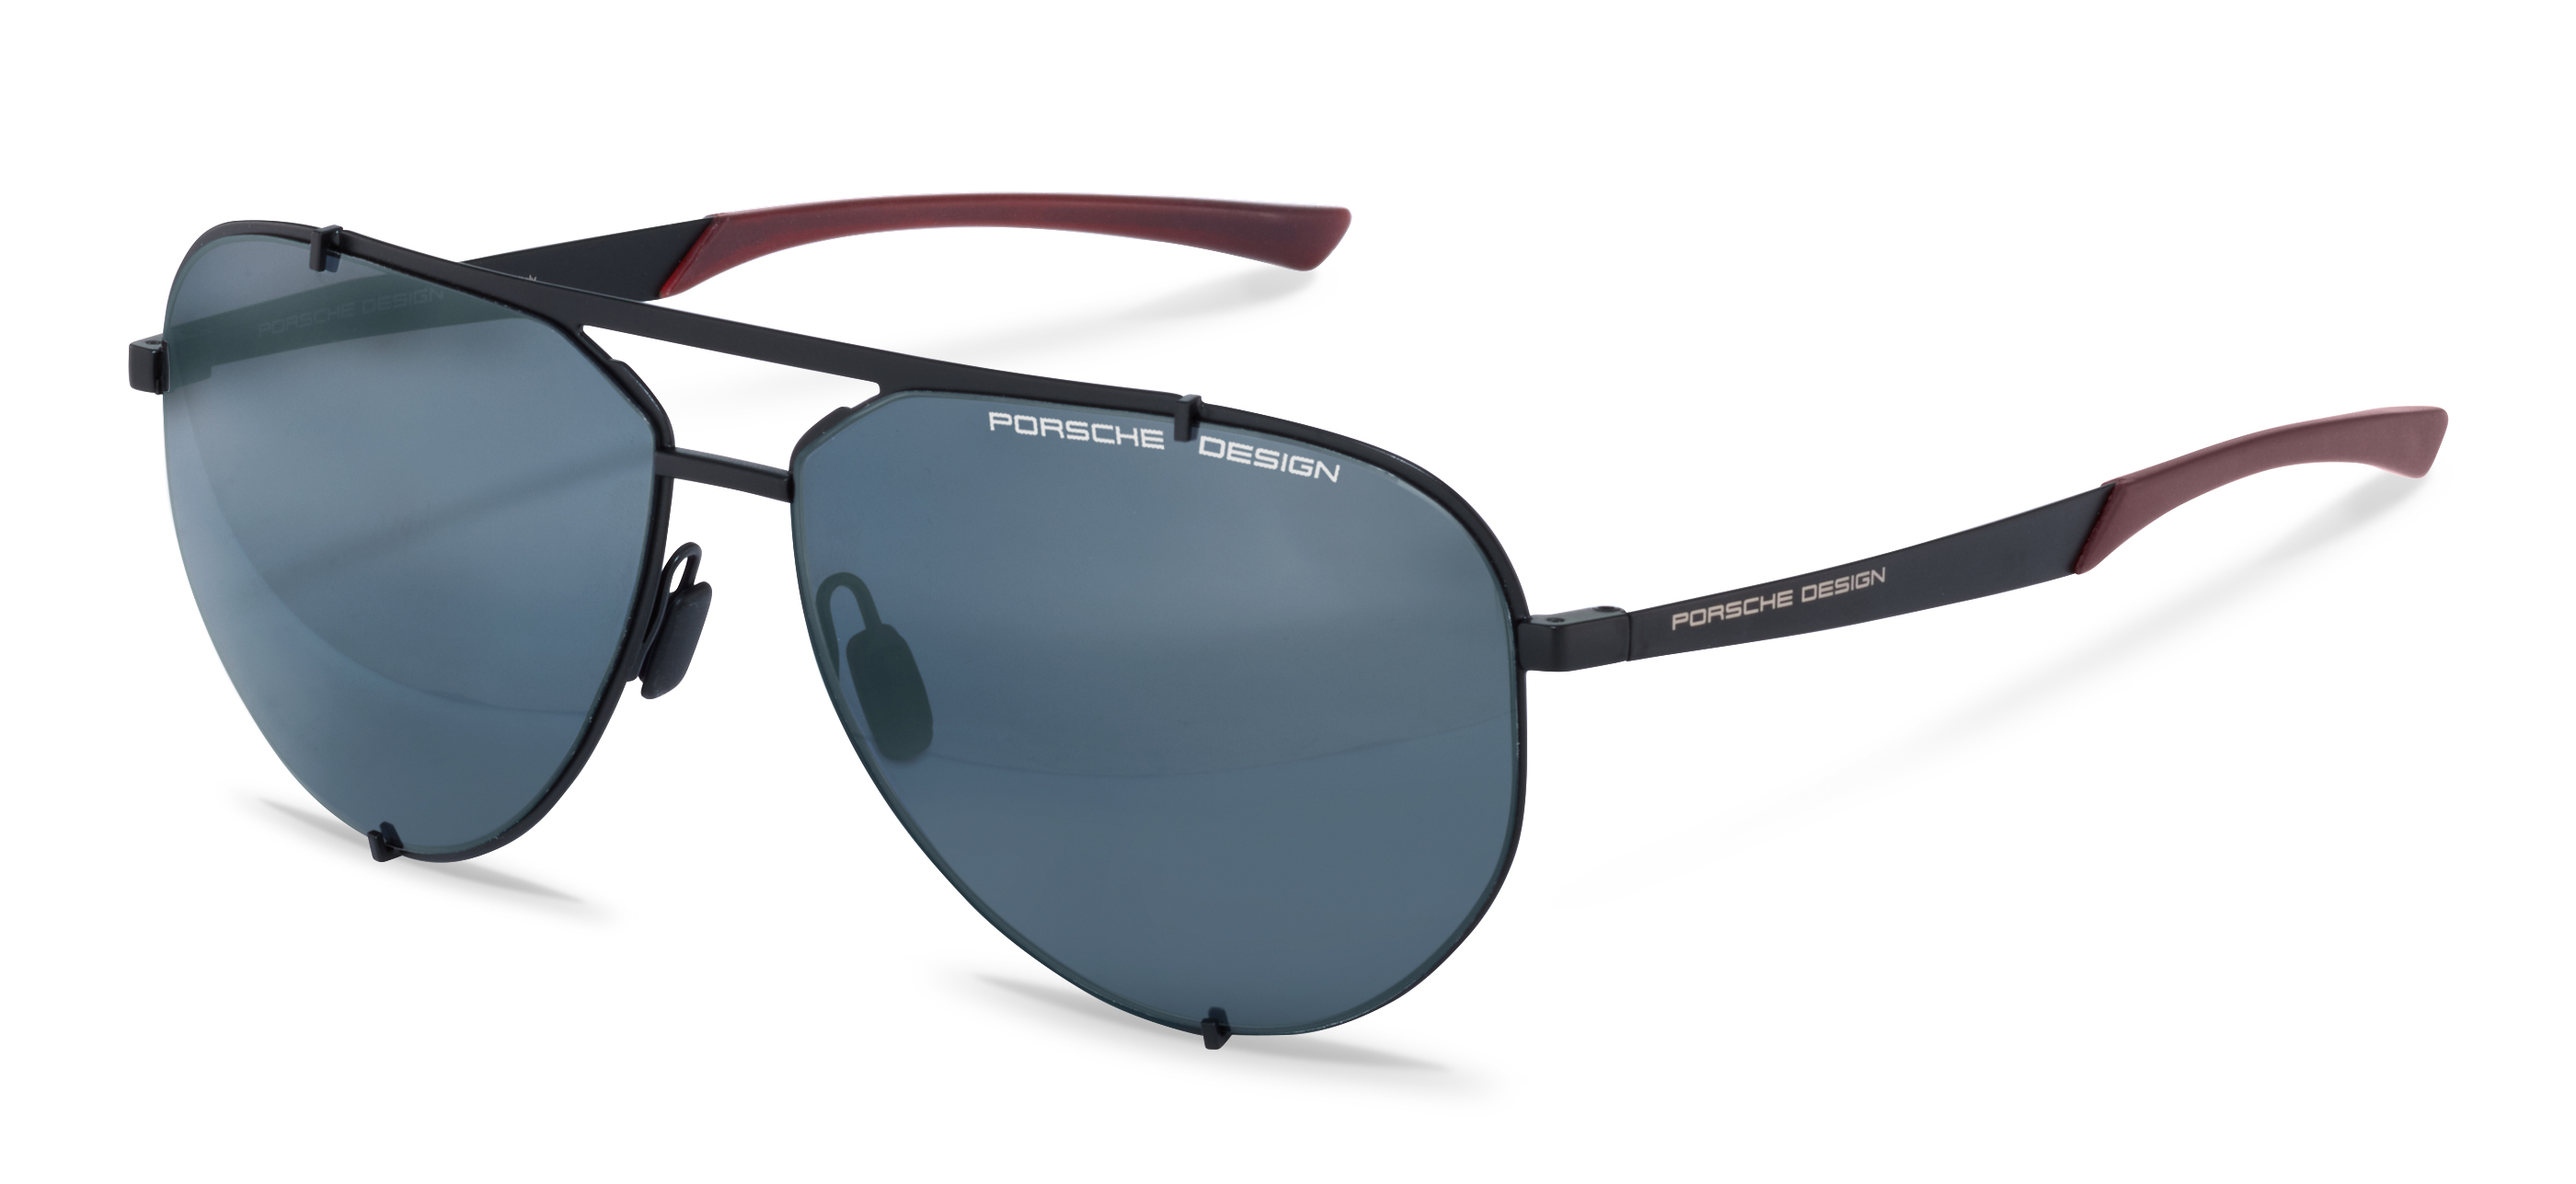 Porsche Design-Sunglasses-P8920-black/darkred